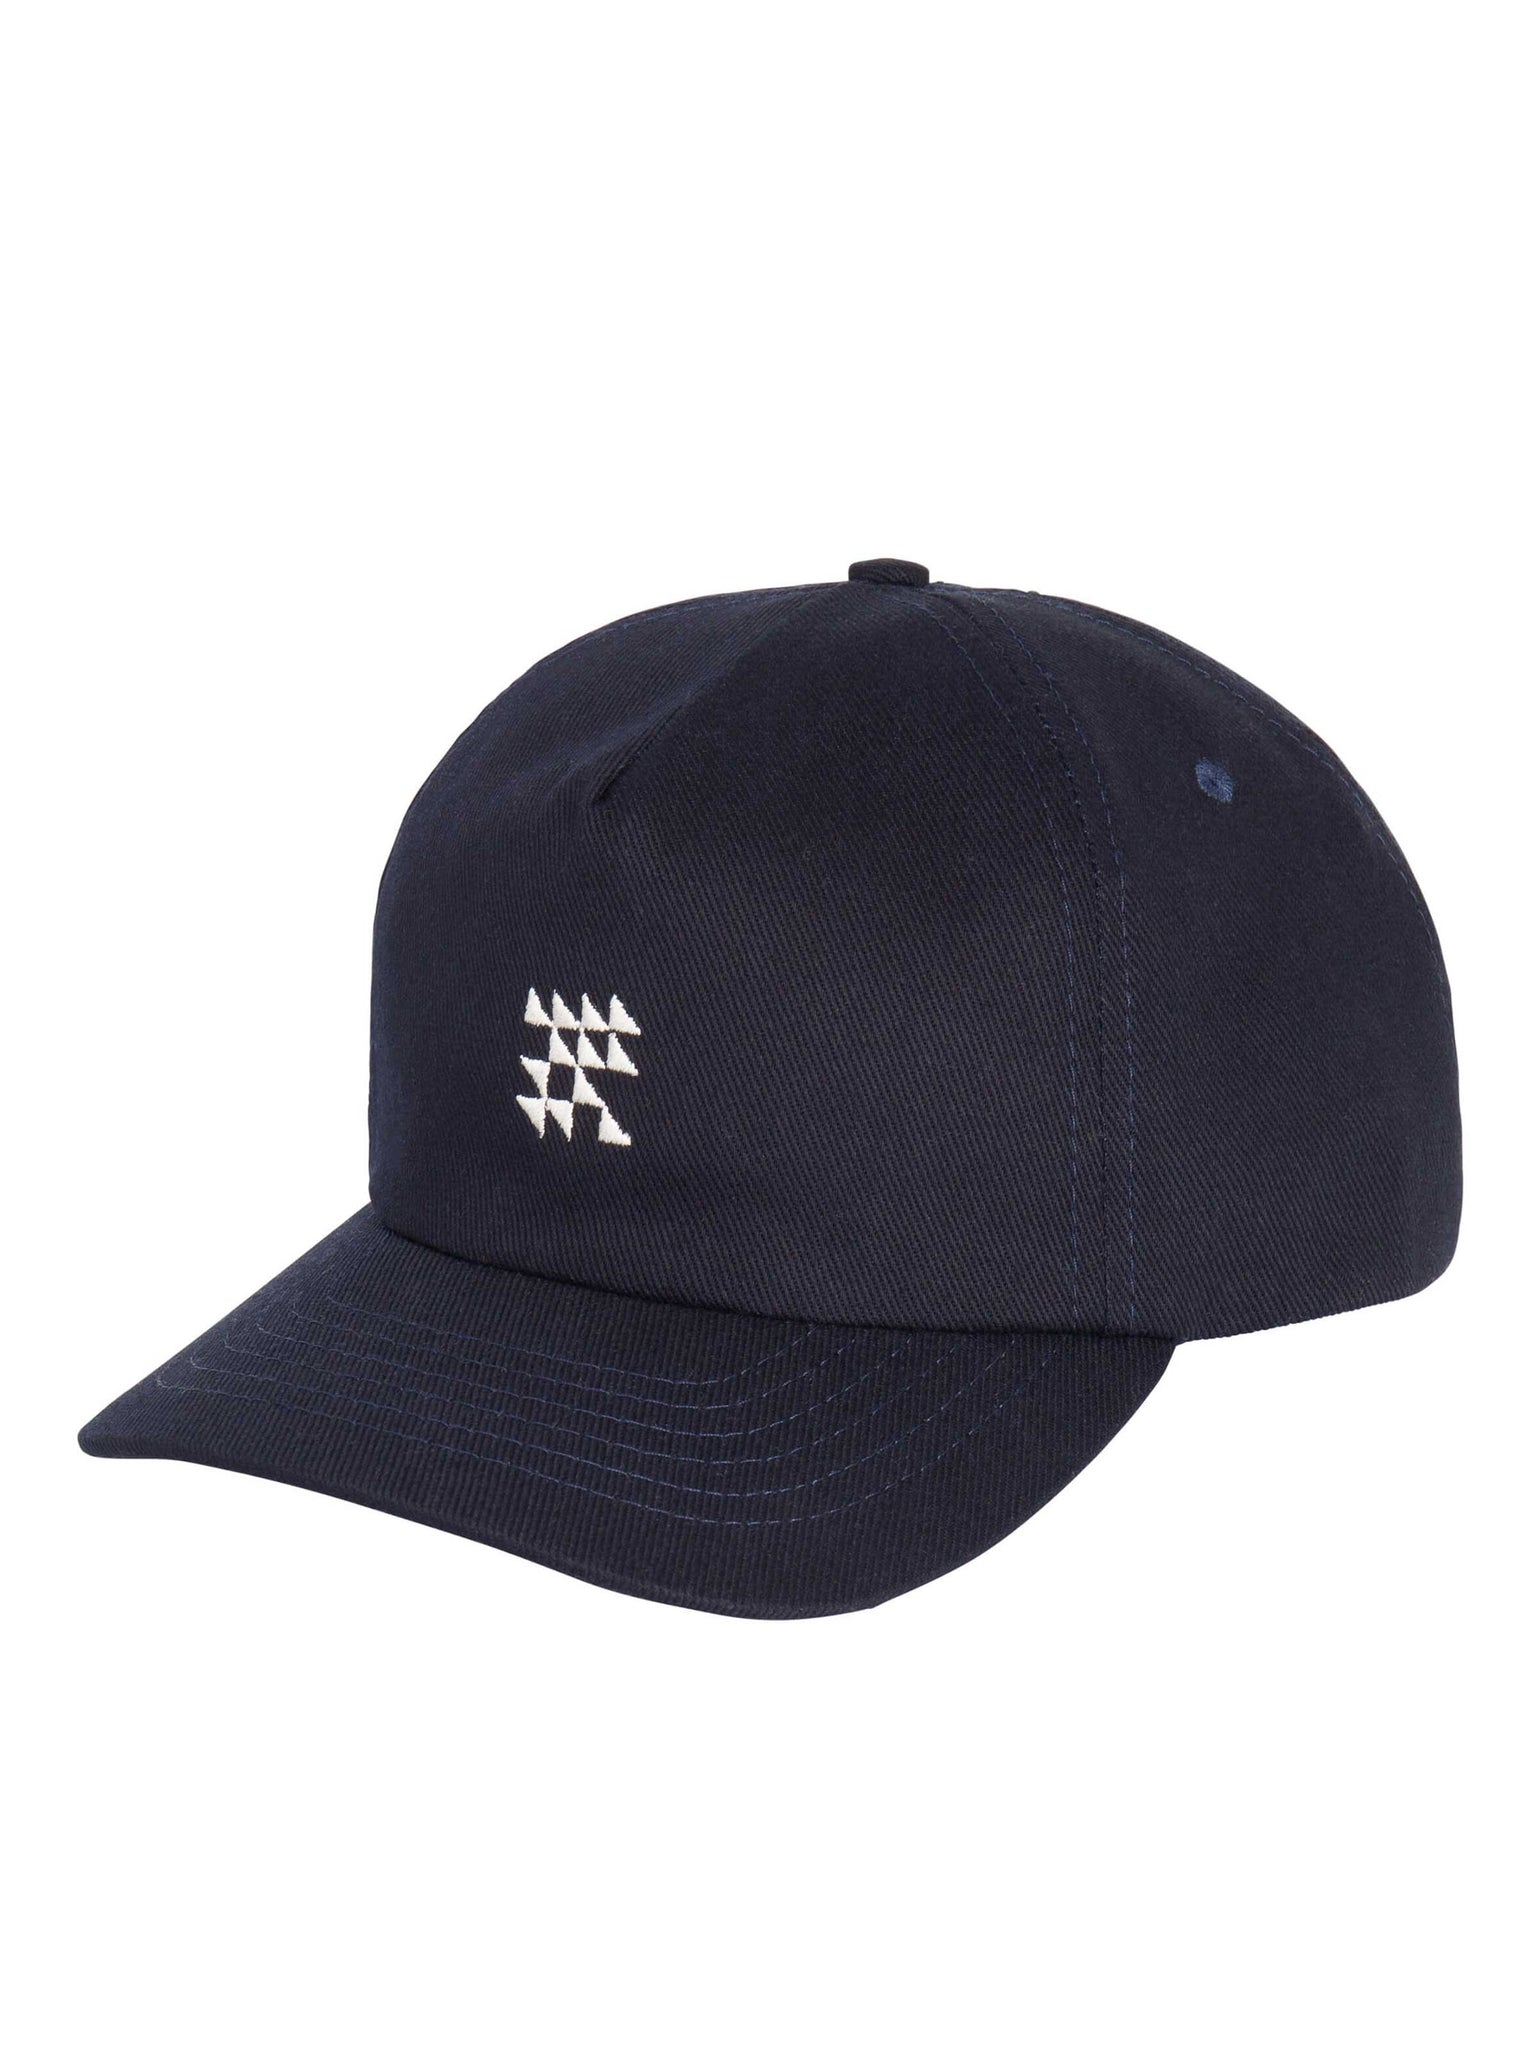 Vapor Wave Polo Hat